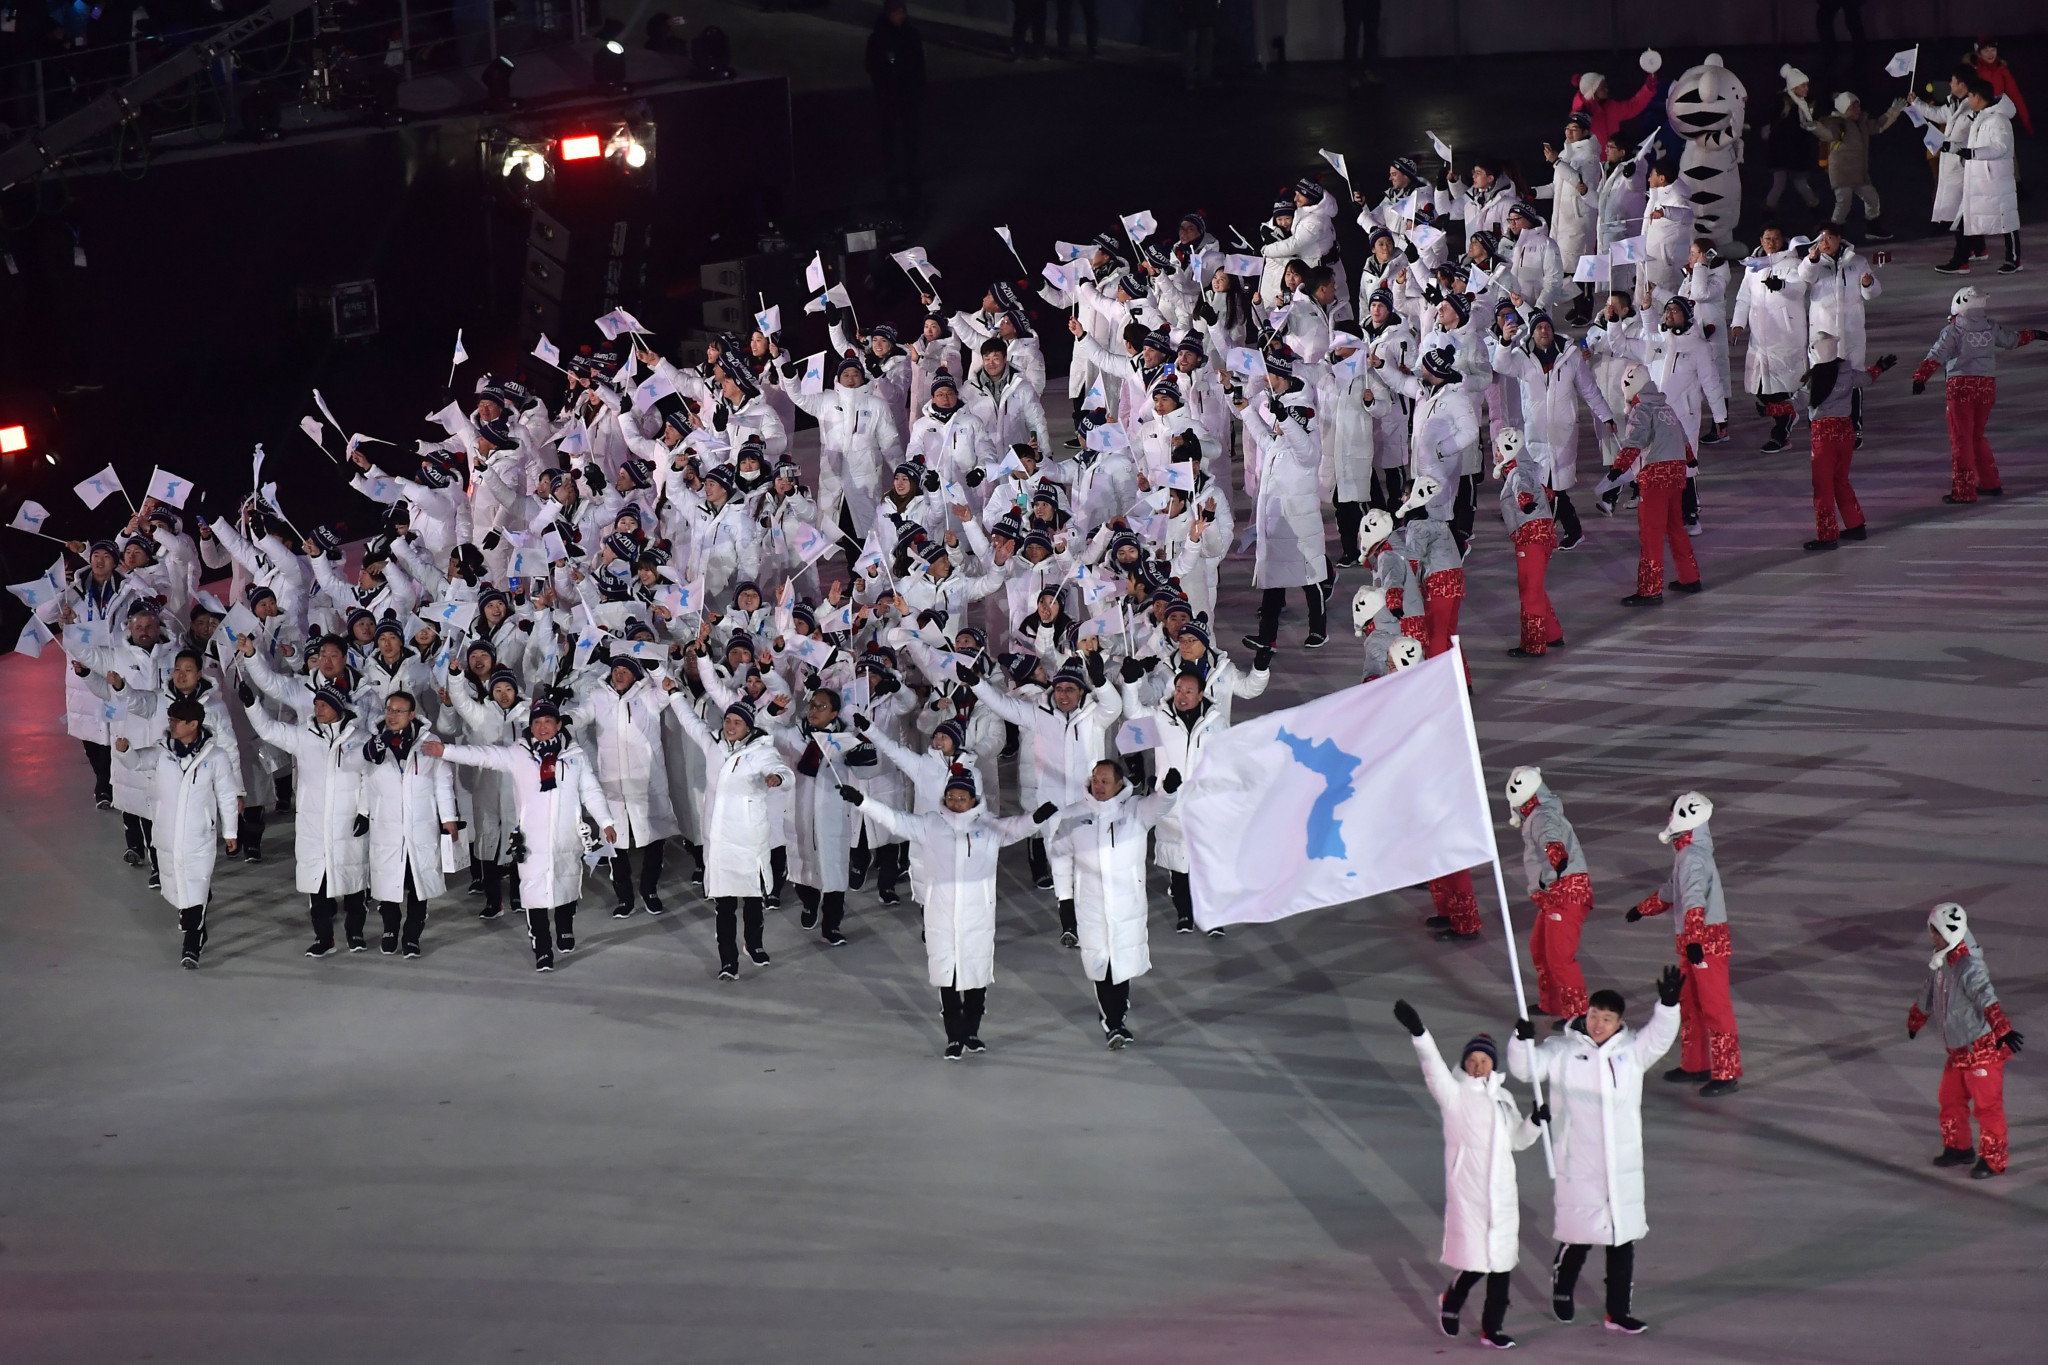 The two Korean teams marching into the Opening Ceremony together under a unified flag was perhaps the most memorable moment of the Games ©Getty Images